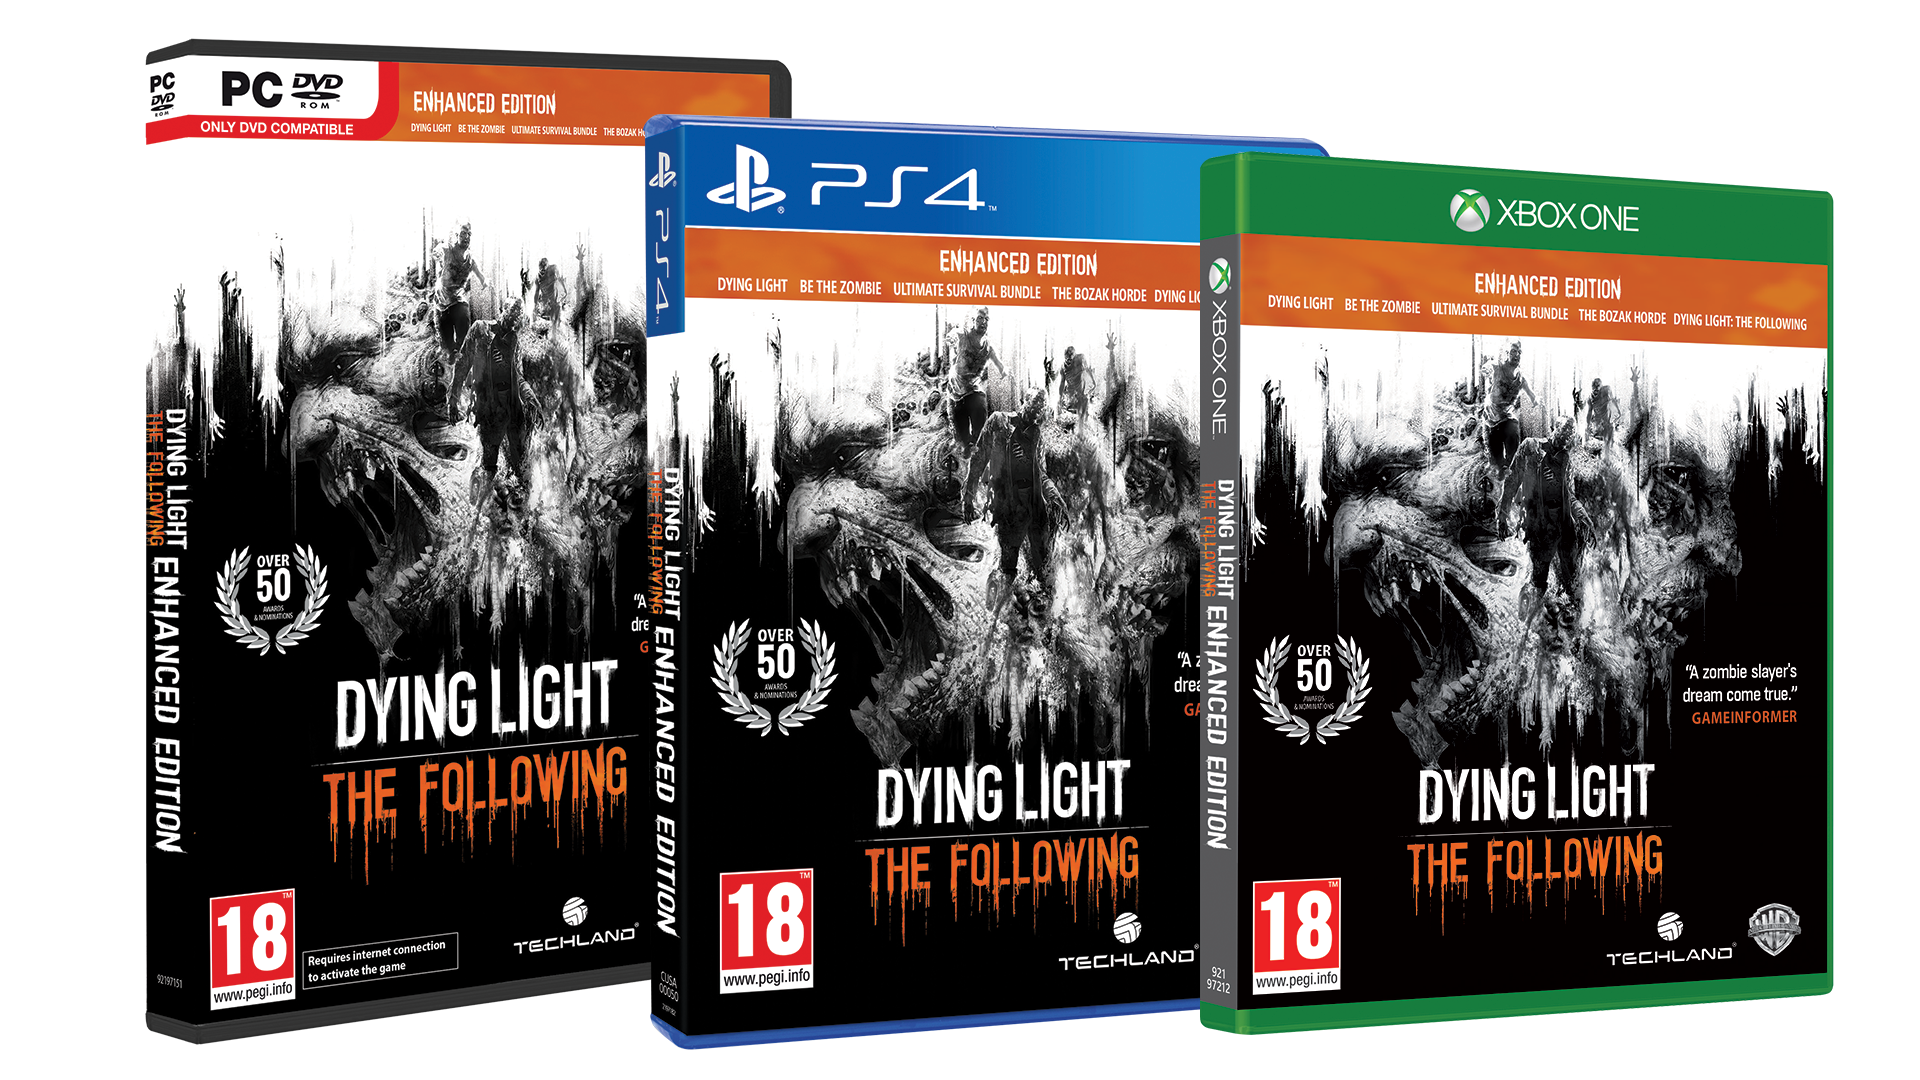 Dying light is getting a battle royale mode | den of geek.